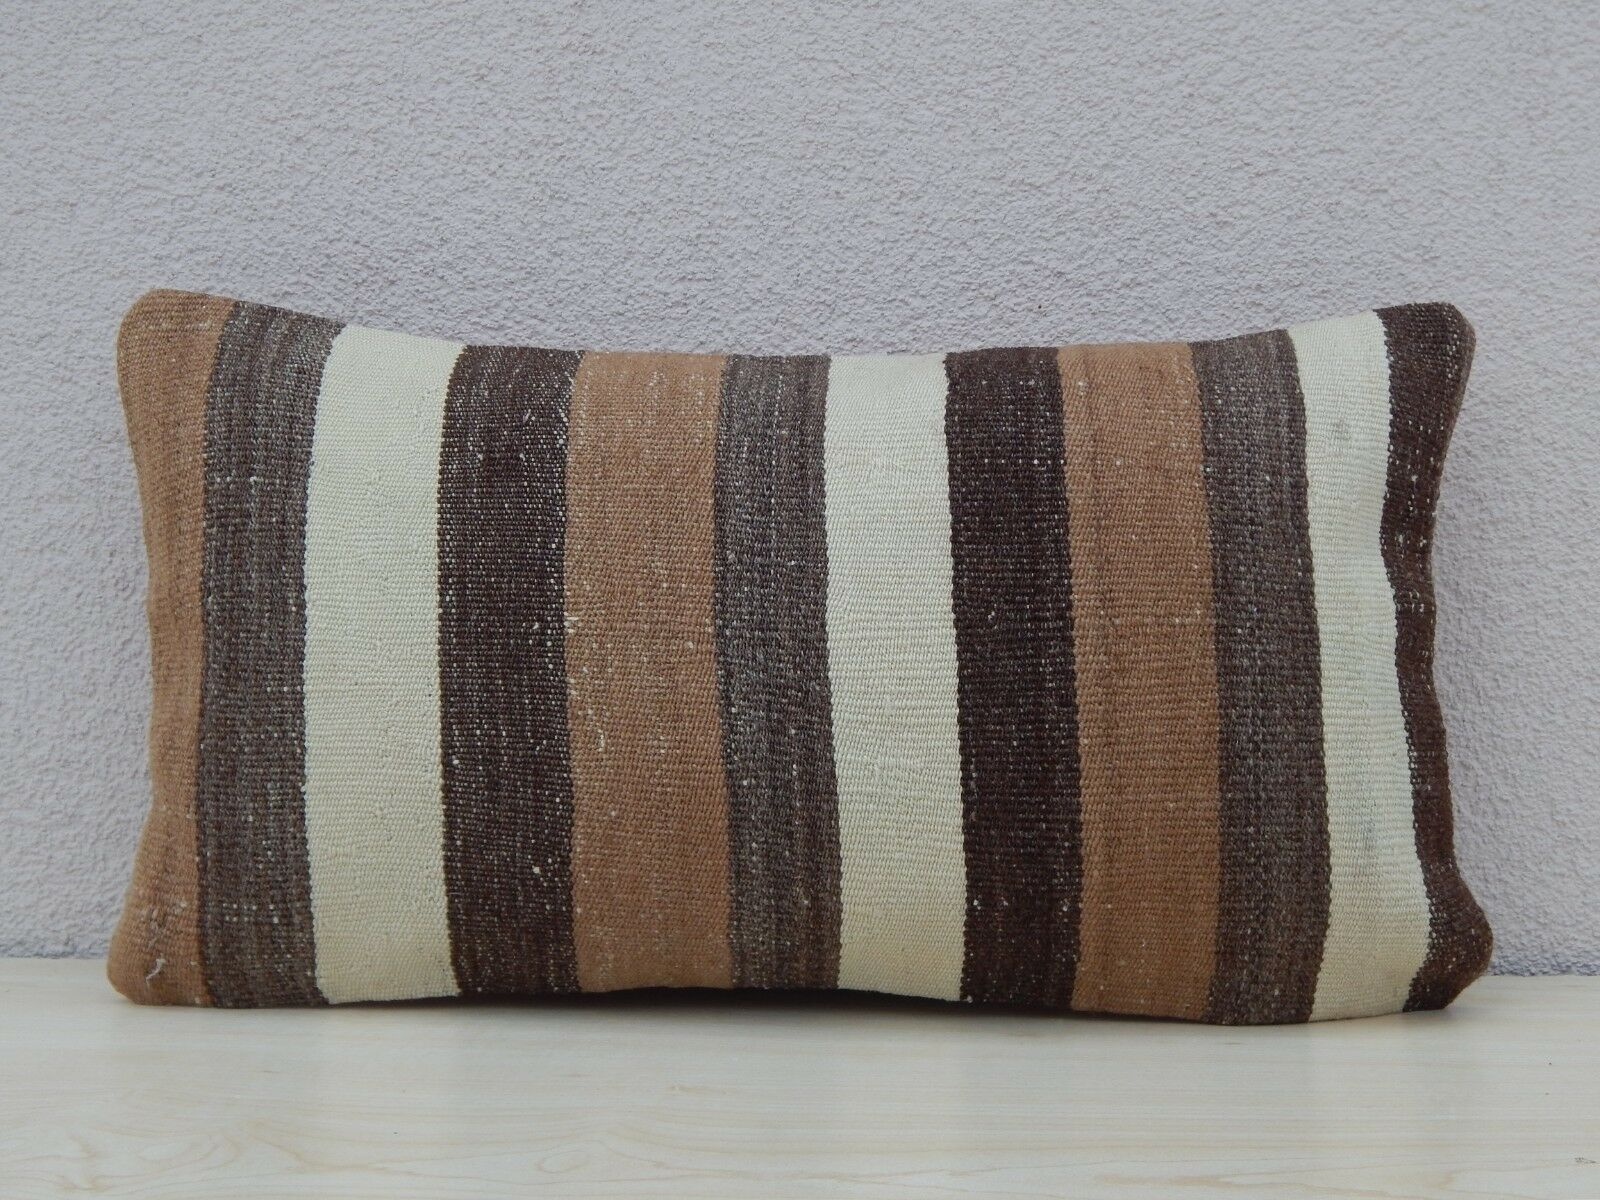 Detektiv Conan Bettwäsche 12 20 Kilim Pillow Area Rug Vintage Outdoor Body Kelim